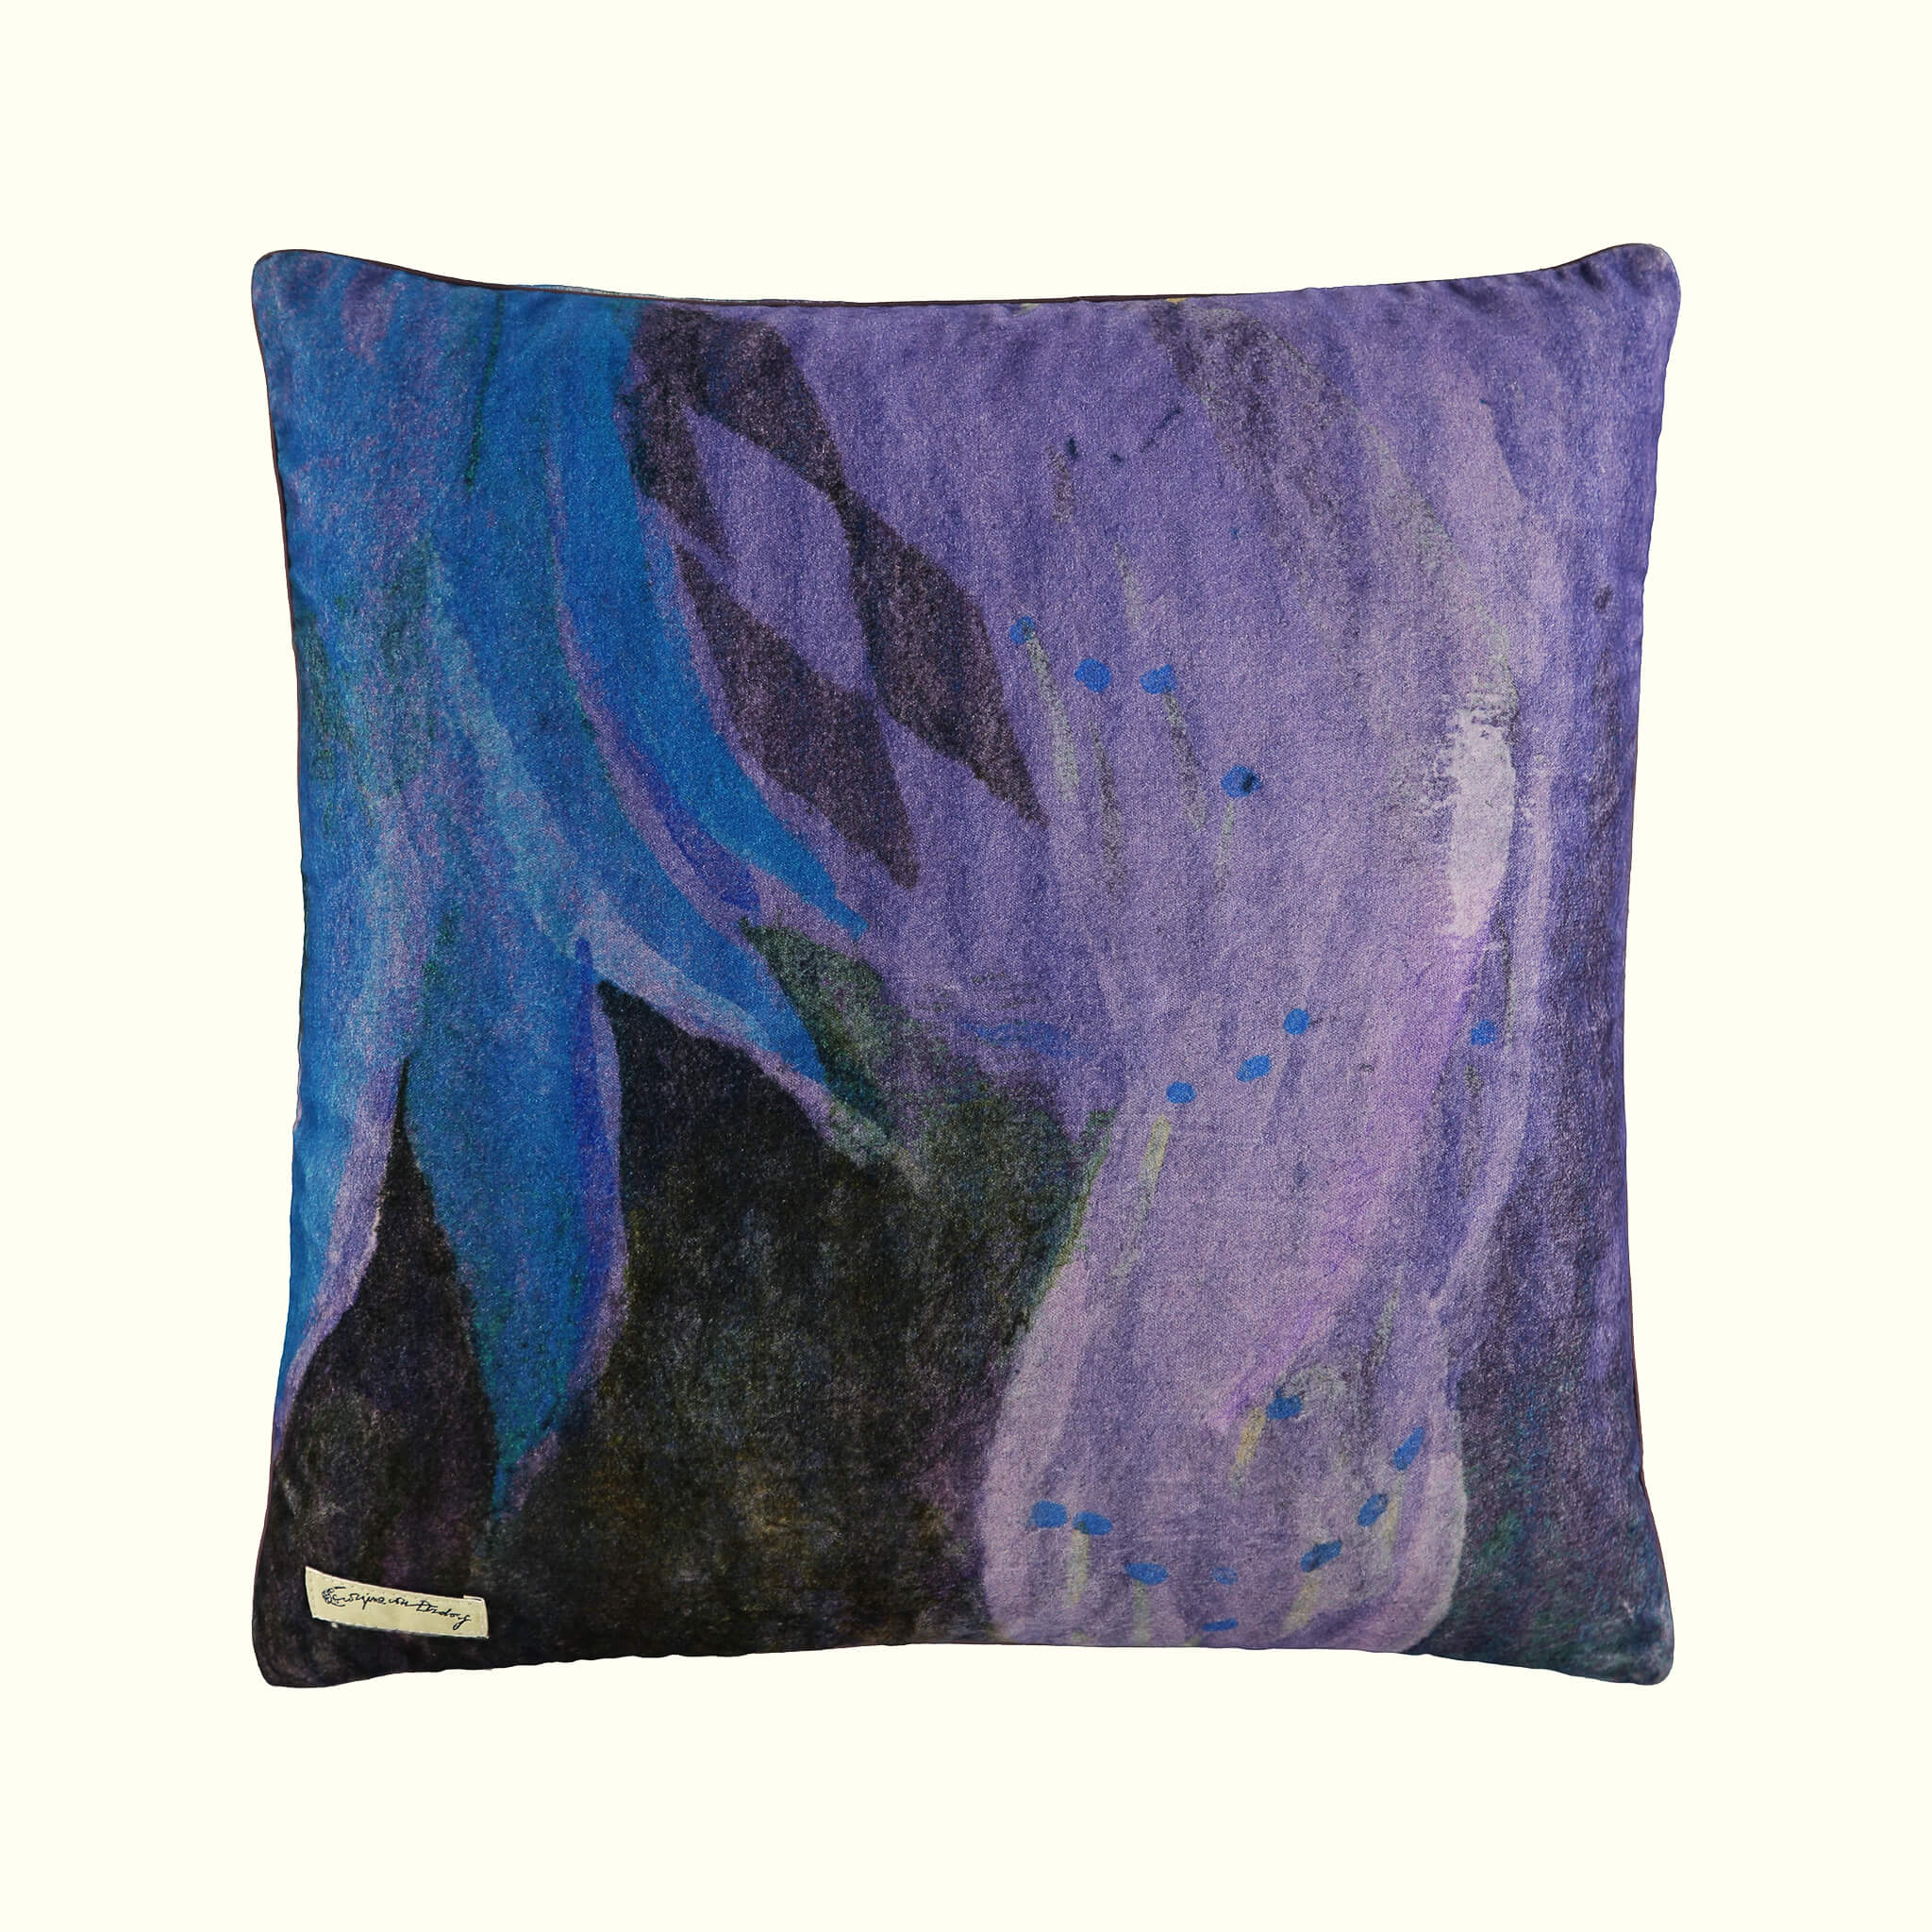 A luxury British cotton velvet cushion by GVE in violet Conversation print design.